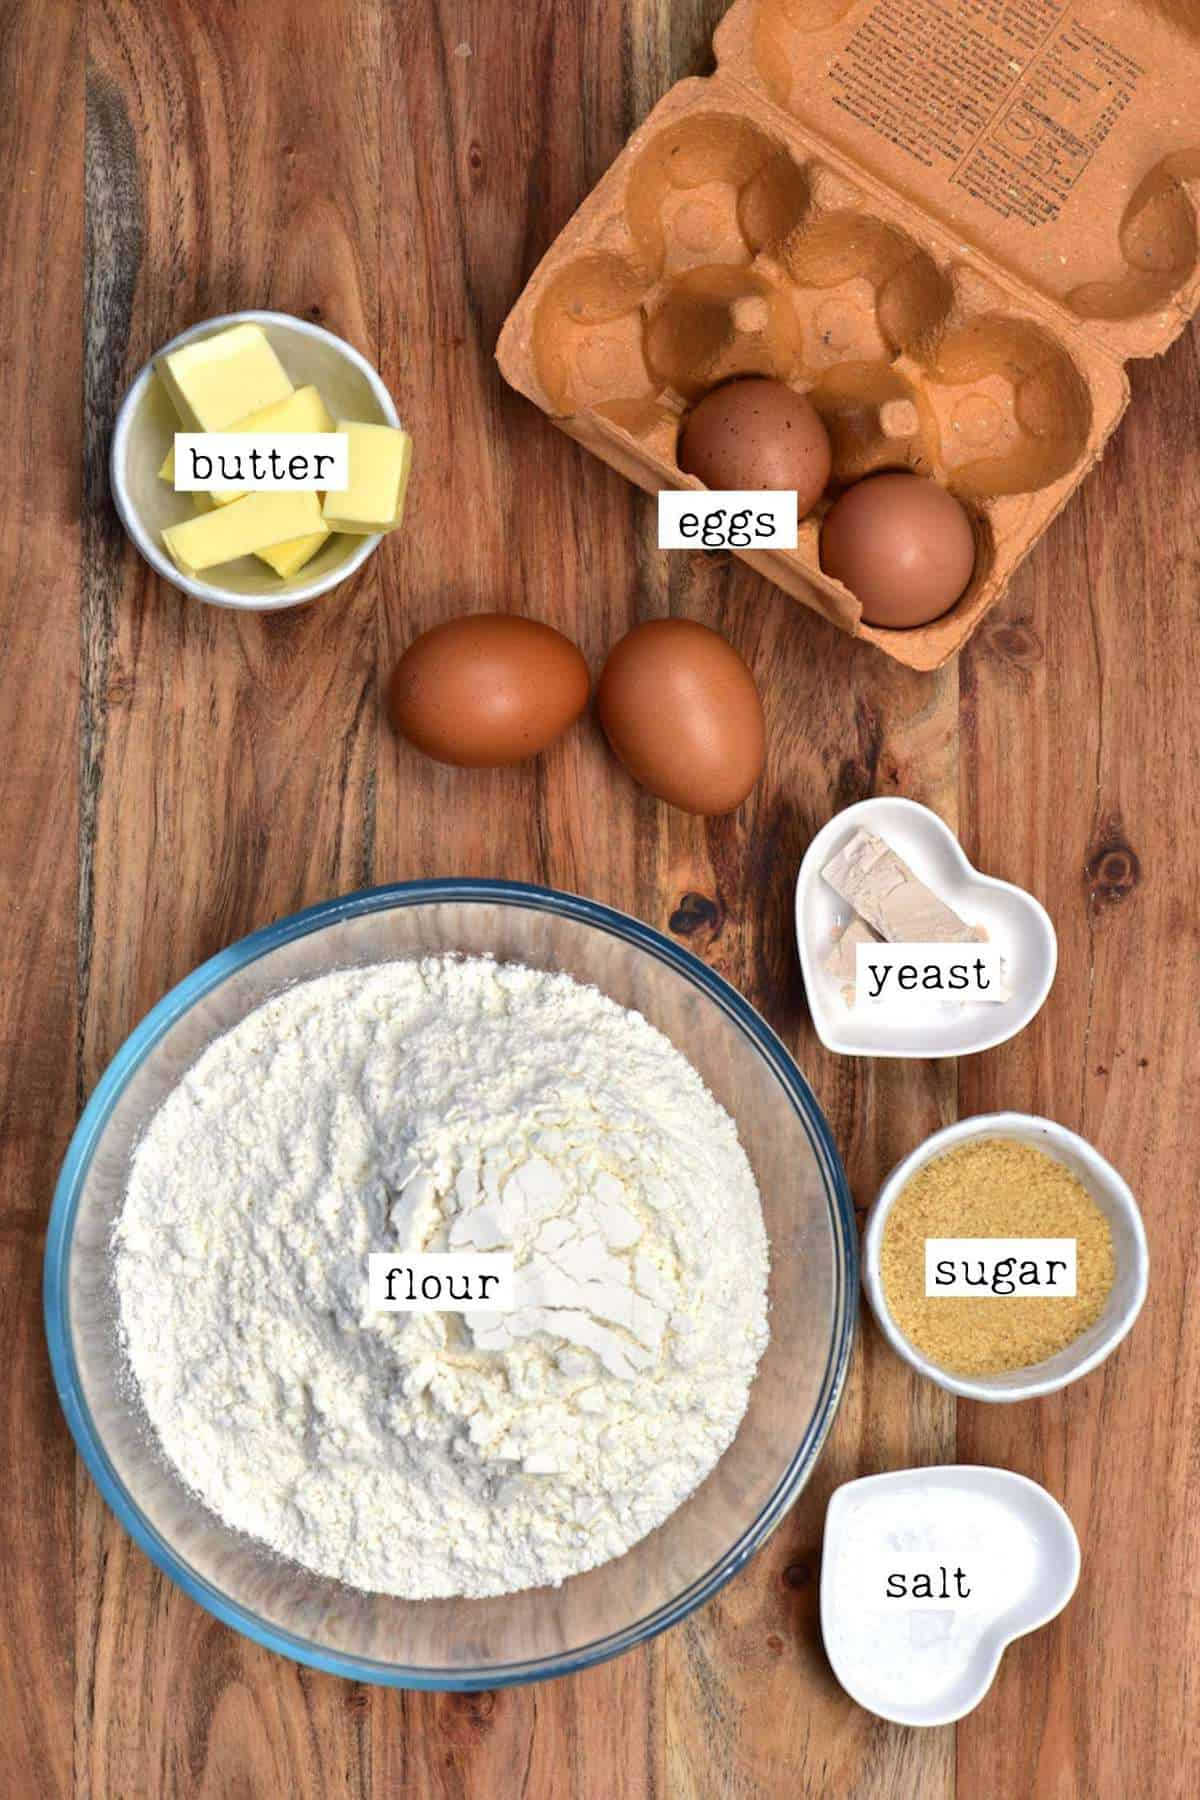 Ingredients for cheese buns